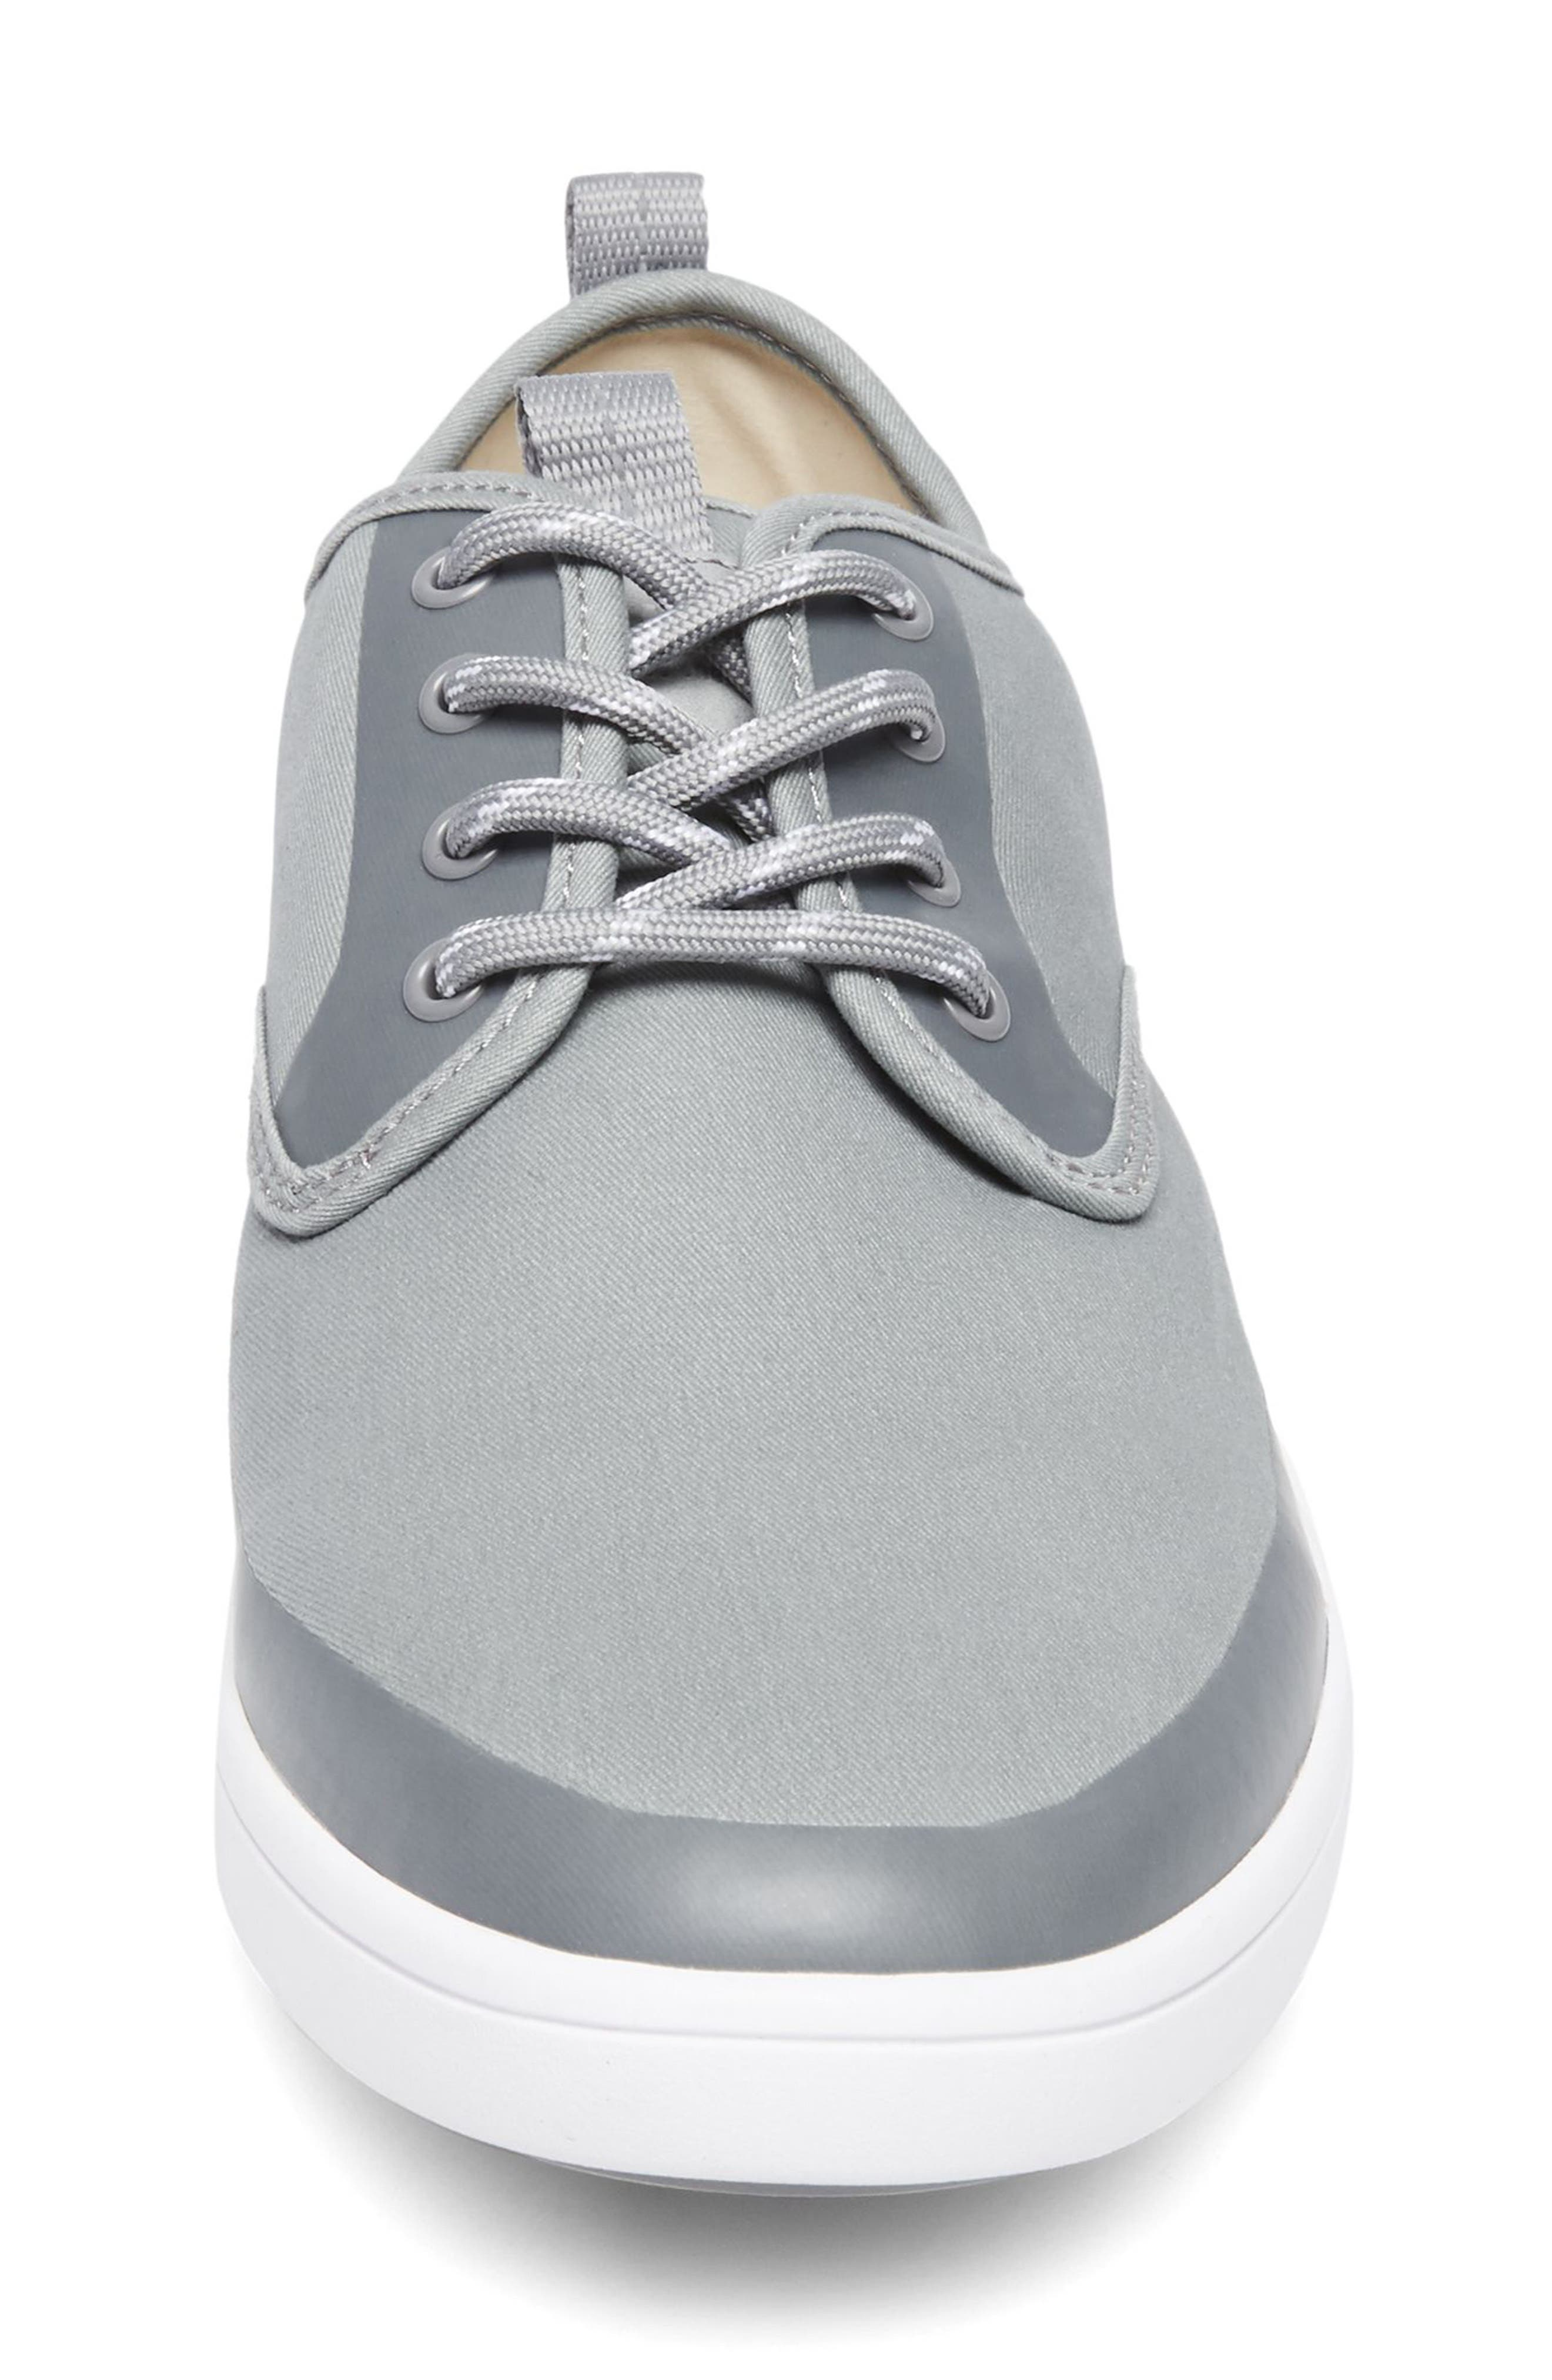 Fayette Low Top Sneaker,                             Alternate thumbnail 4, color,                             Grey Fabric